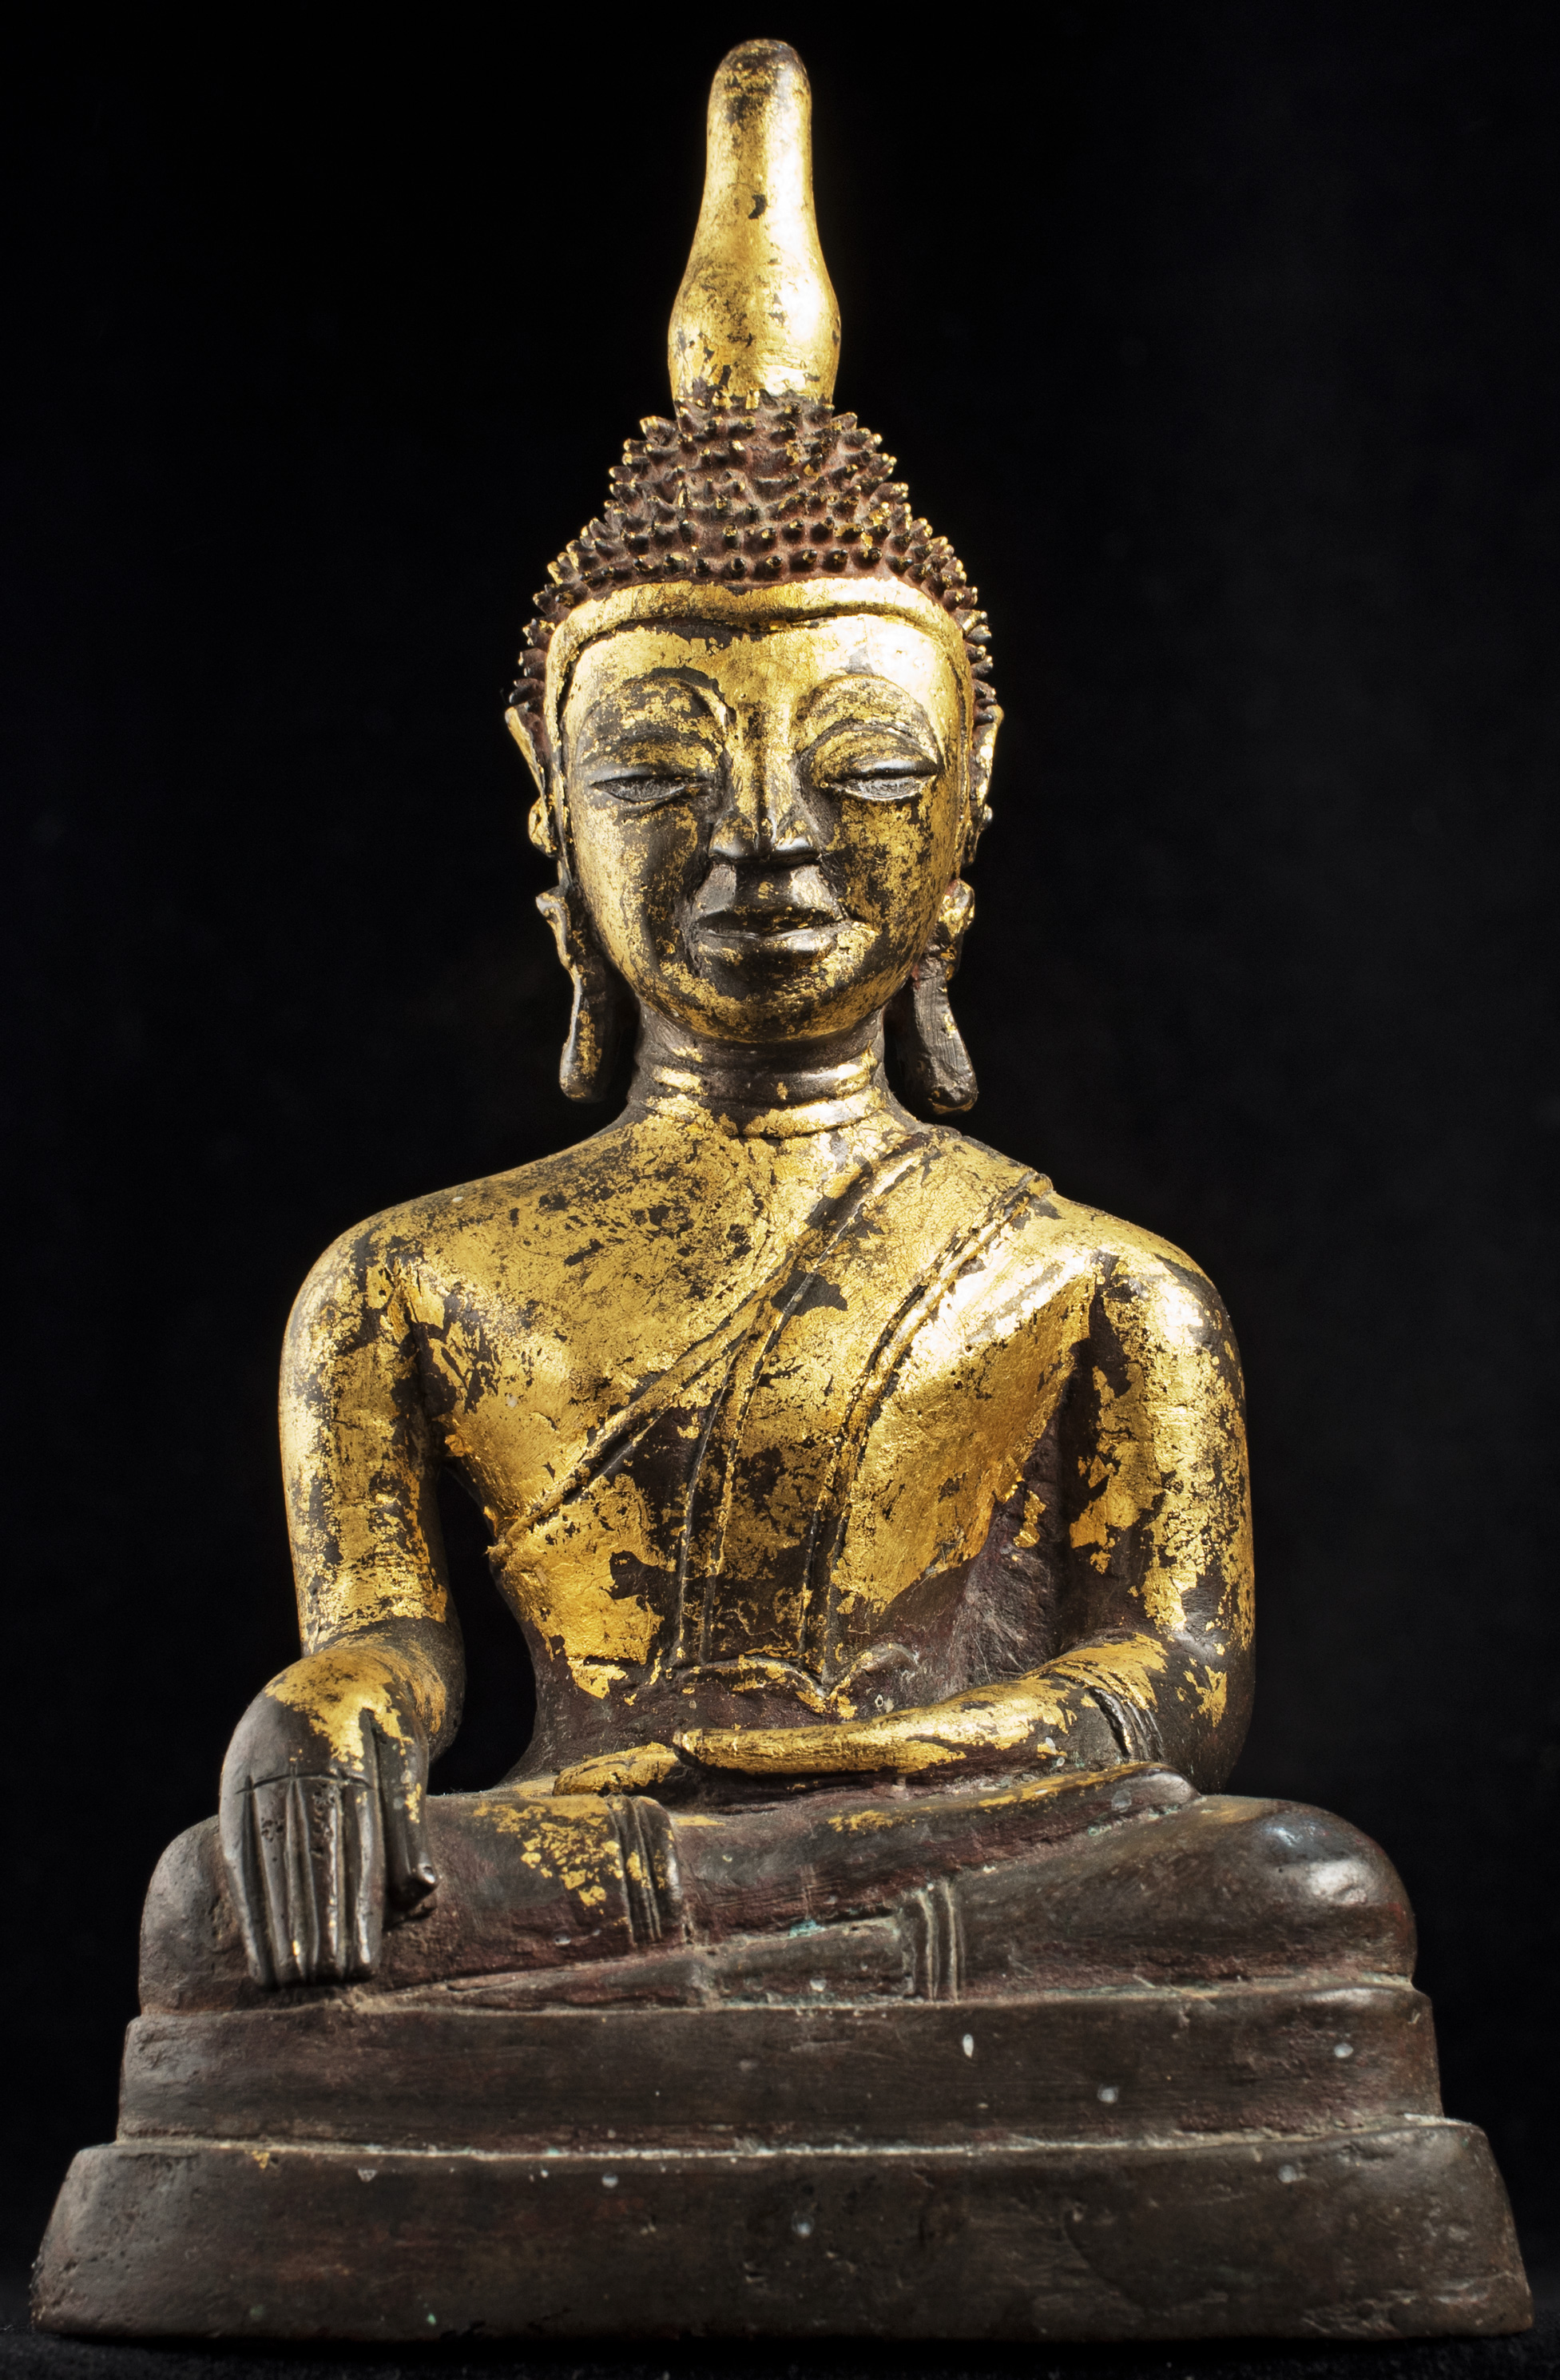 Cambodia Presses U.S. Museums to Return Antiquities - The